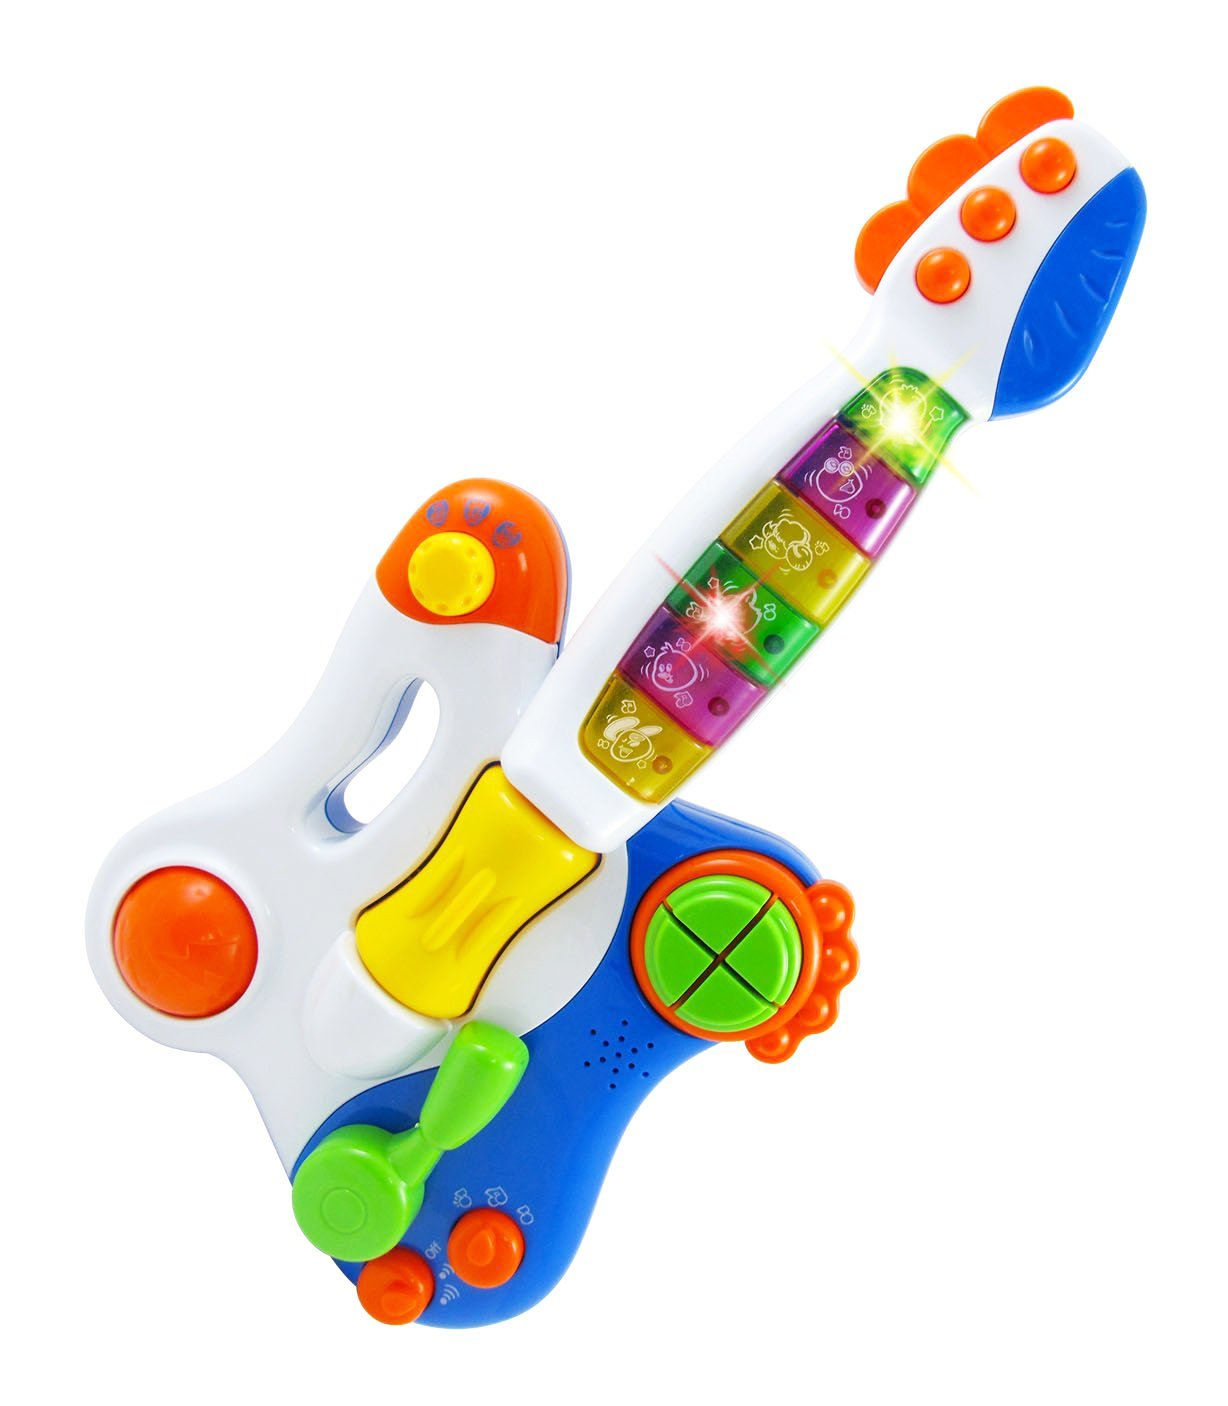 DJ Guitar Toy for Kids by Liberty Imports   B0082FQ60I